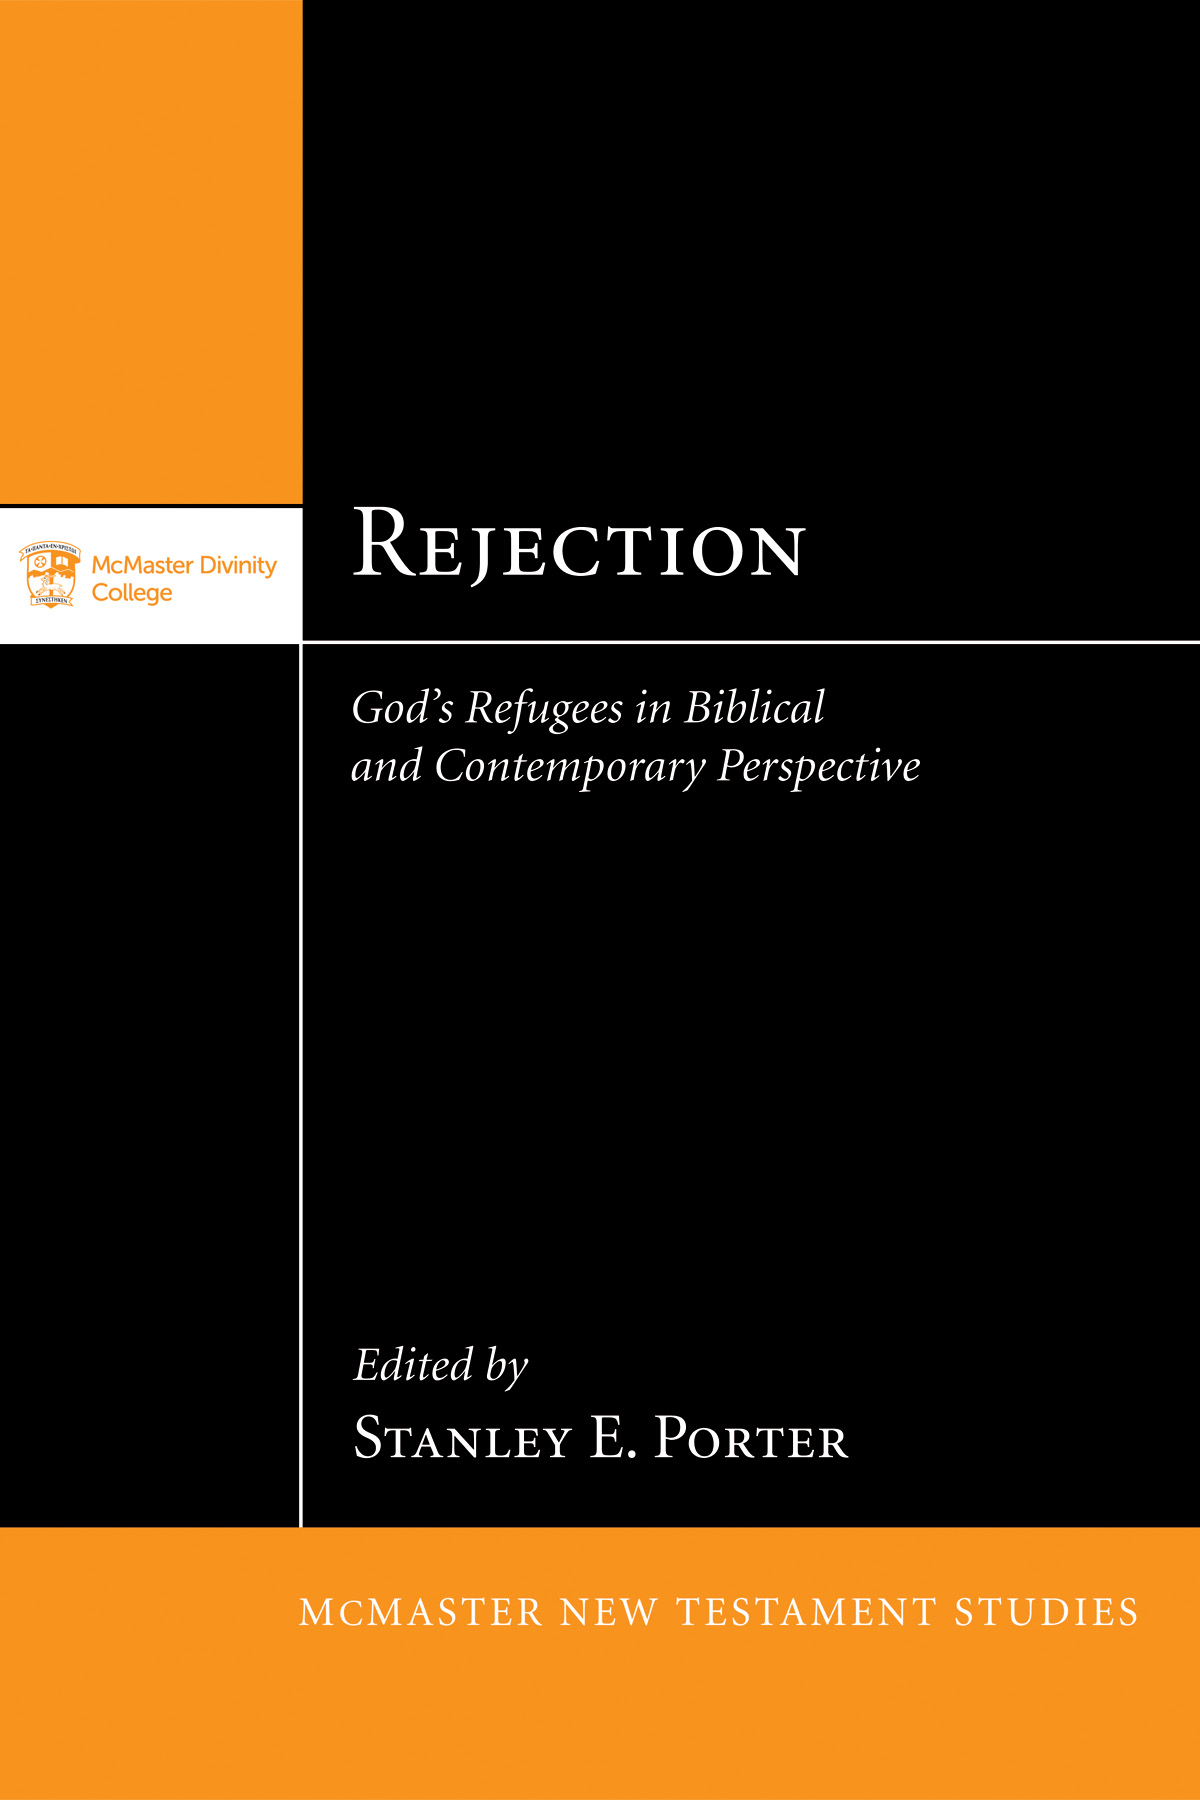 Rejection: God's Refugees in Biblical and Contemporary Perspective book cover